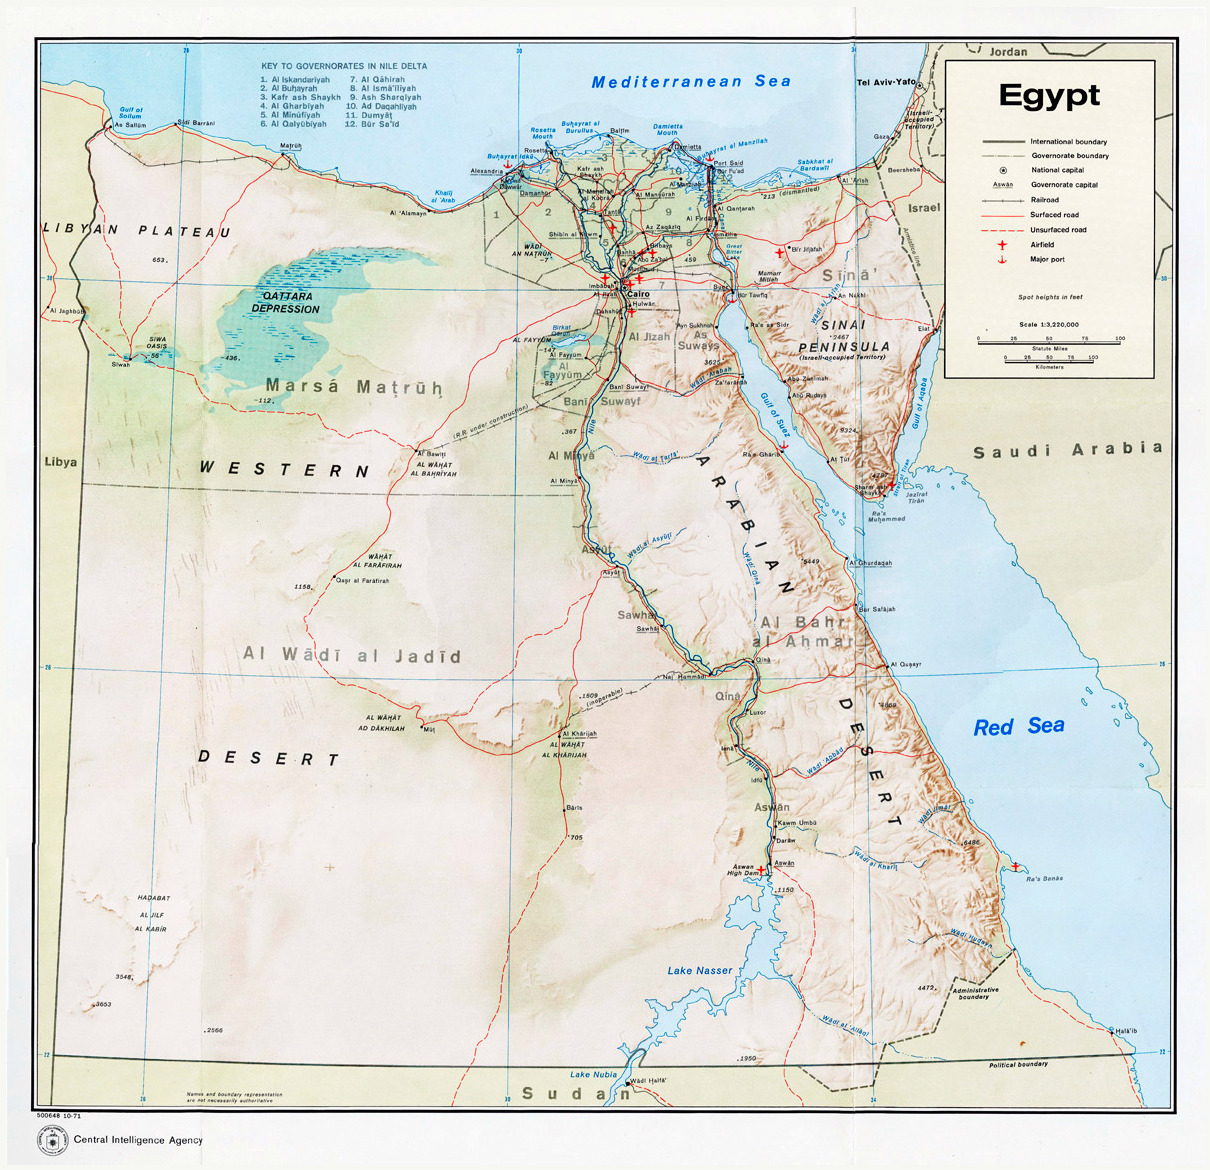 Political and administrative map of Egypt with relief roads